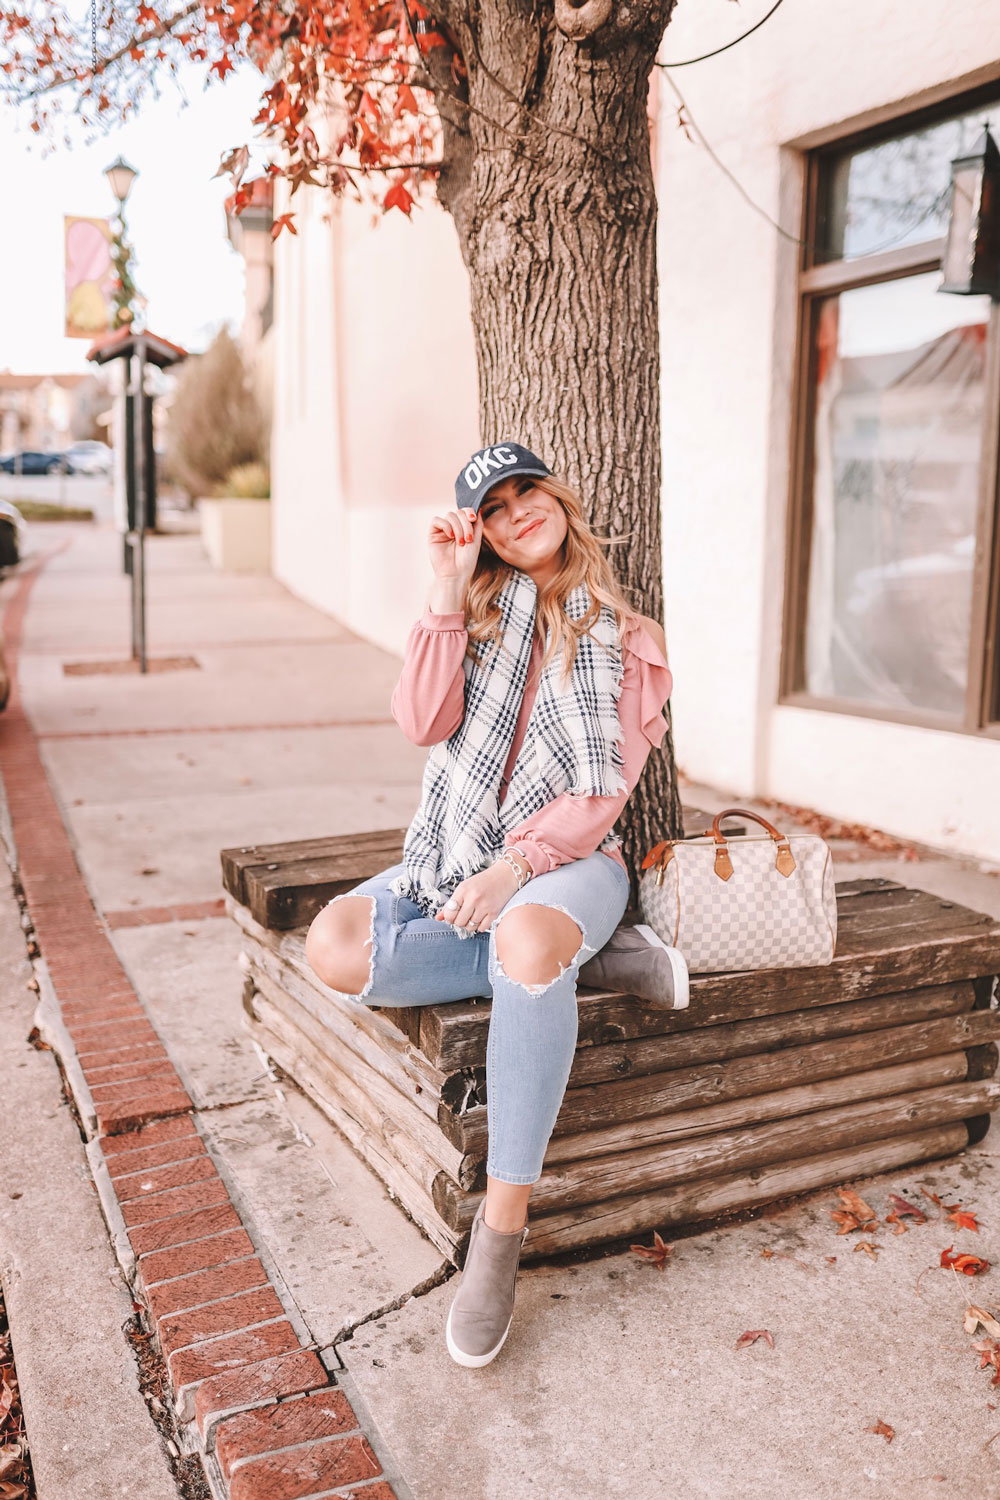 OKC Blogger Amanda's OK sports an OKC cap and a blanket scarf in the Paseo district